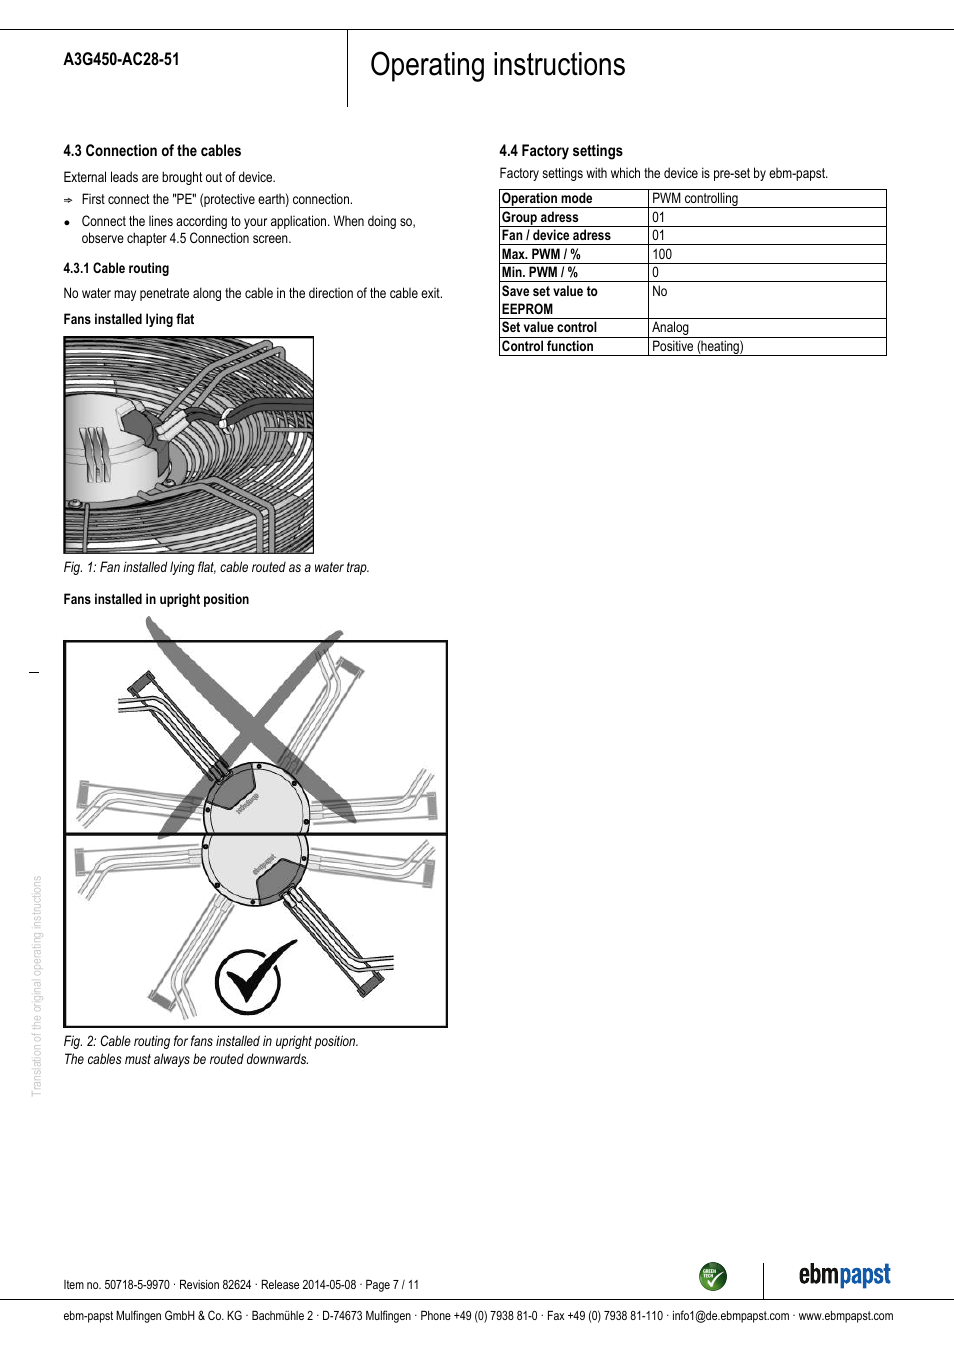 Ebm Papst Fan Wiring Diagram Switchcraft Osram Blower Operating Instructions A3g450 Ac28 51 User Manual Page On